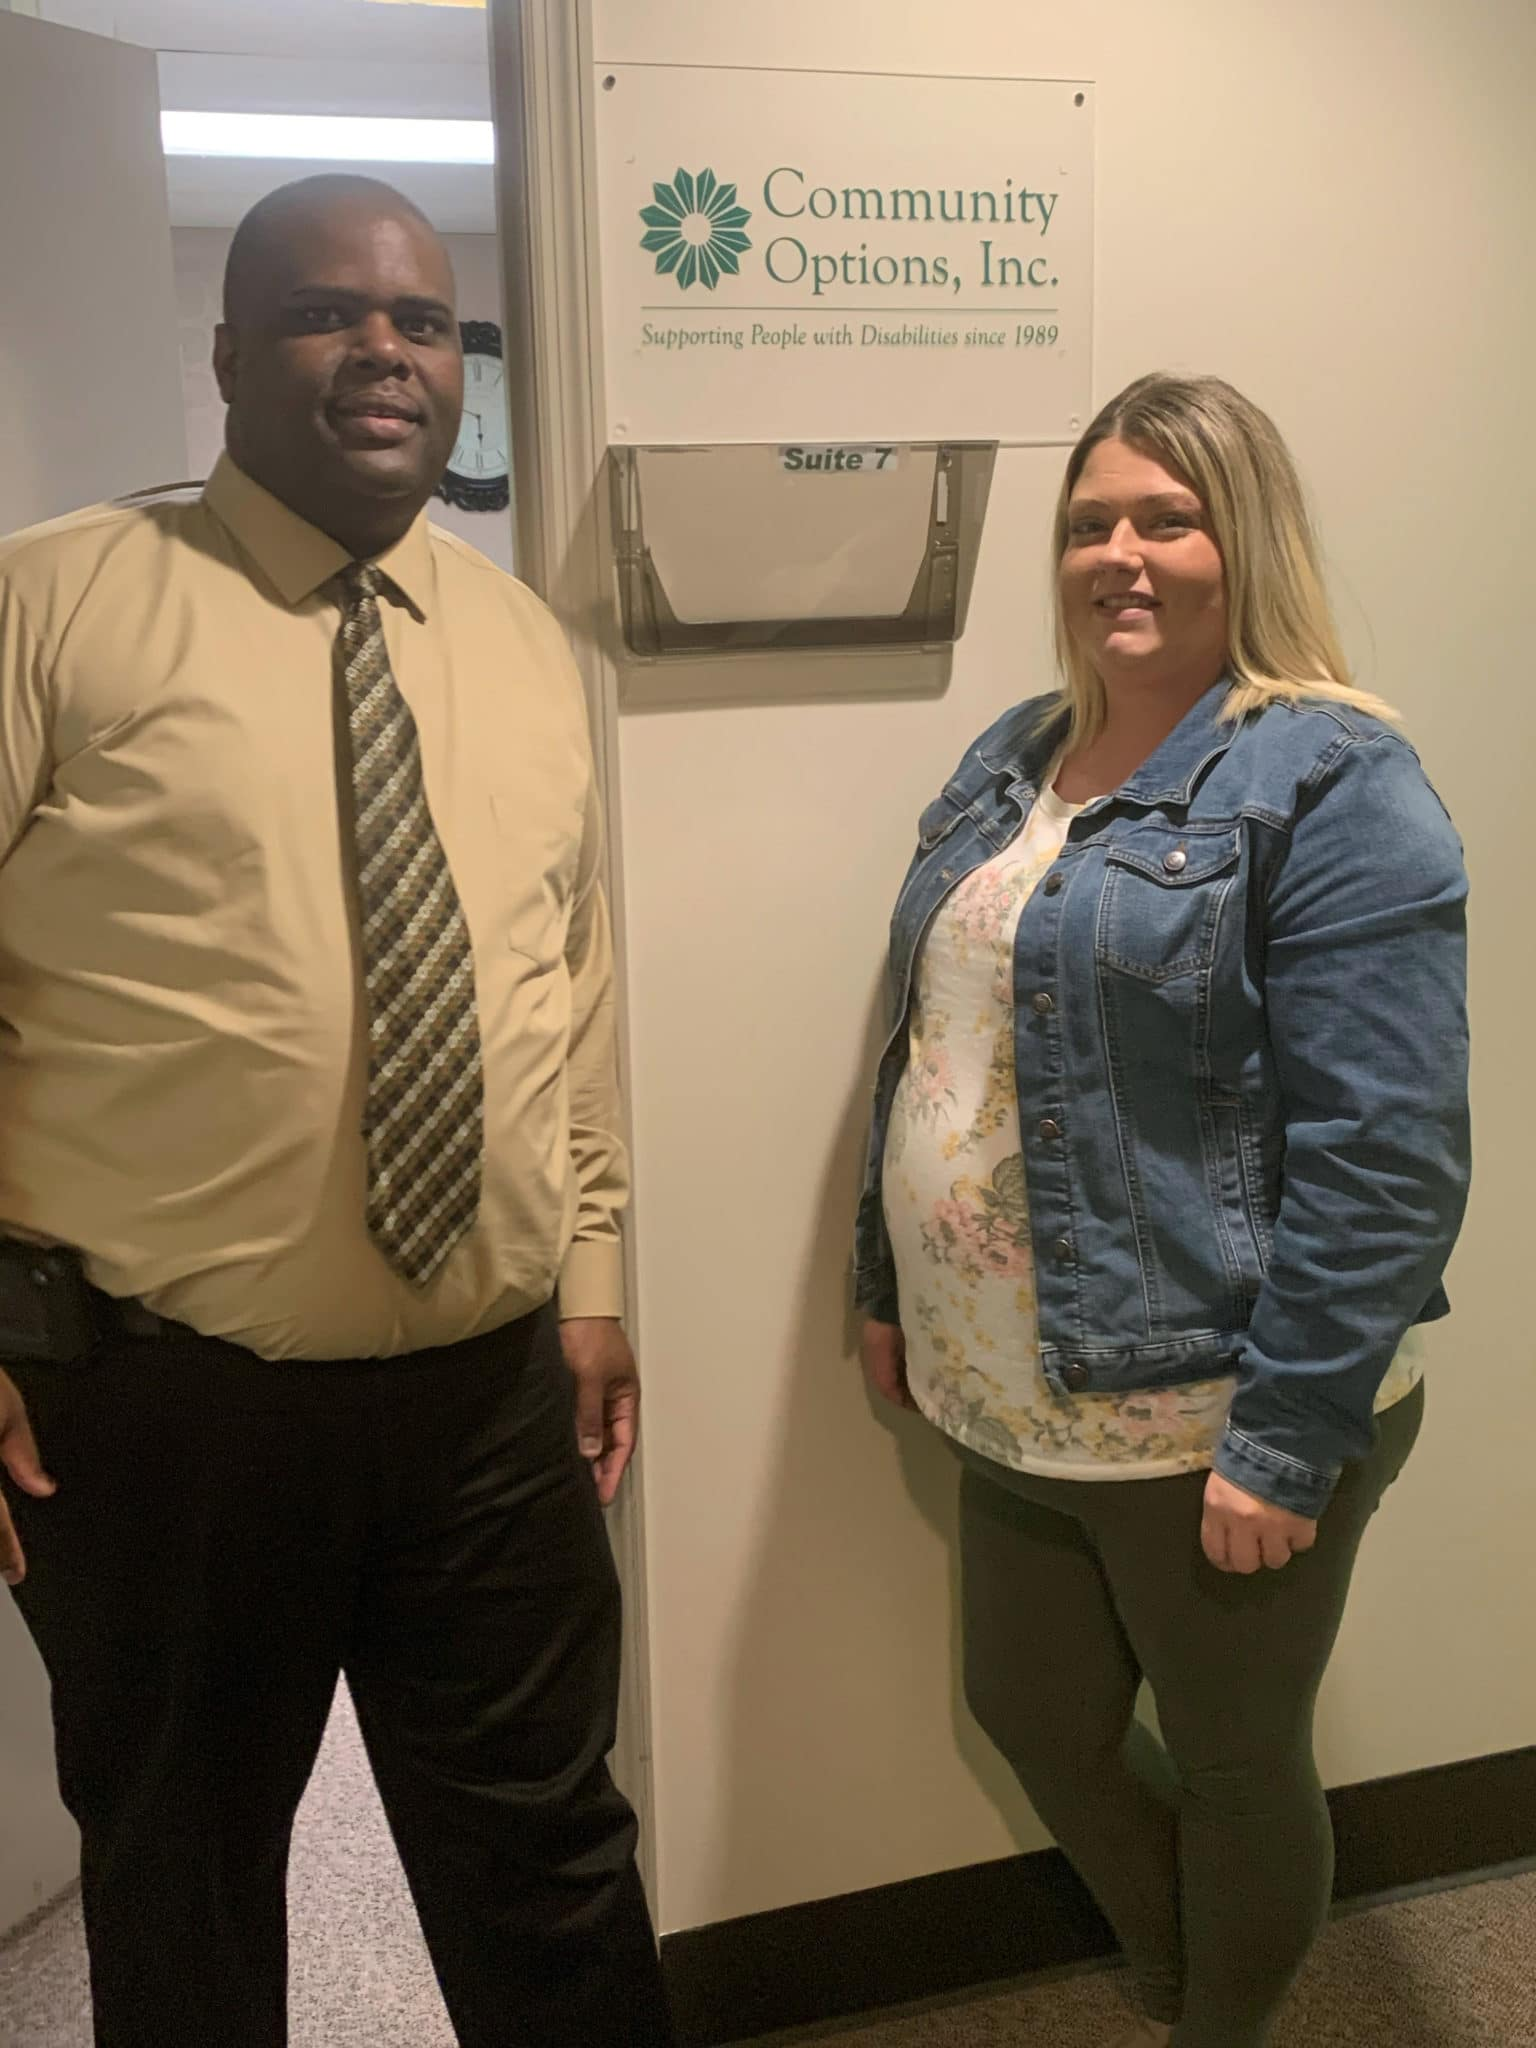 Community Options, Inc. of Franklin was established in 2020 to provide community-based options for residential and employment support services to individuals with disabilities living in Williamson, Maury, Rutherford, and Bedford counties.